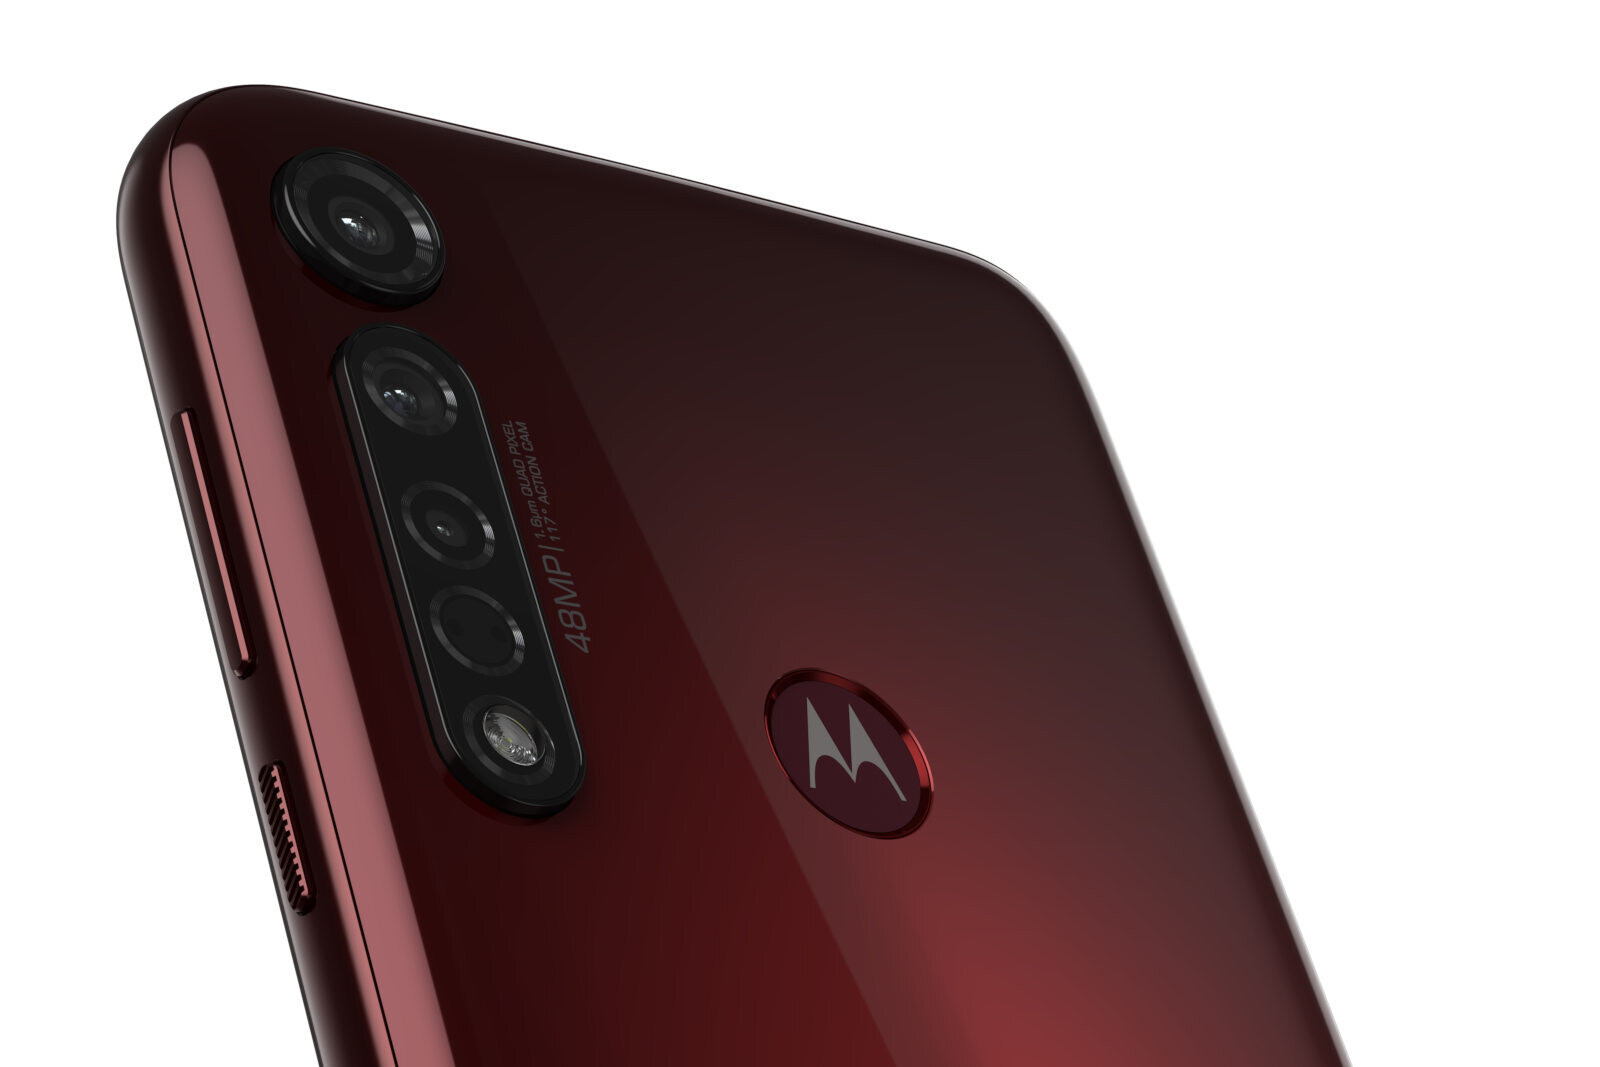 Moto G8 Plus launching today: Here's everything you need to know